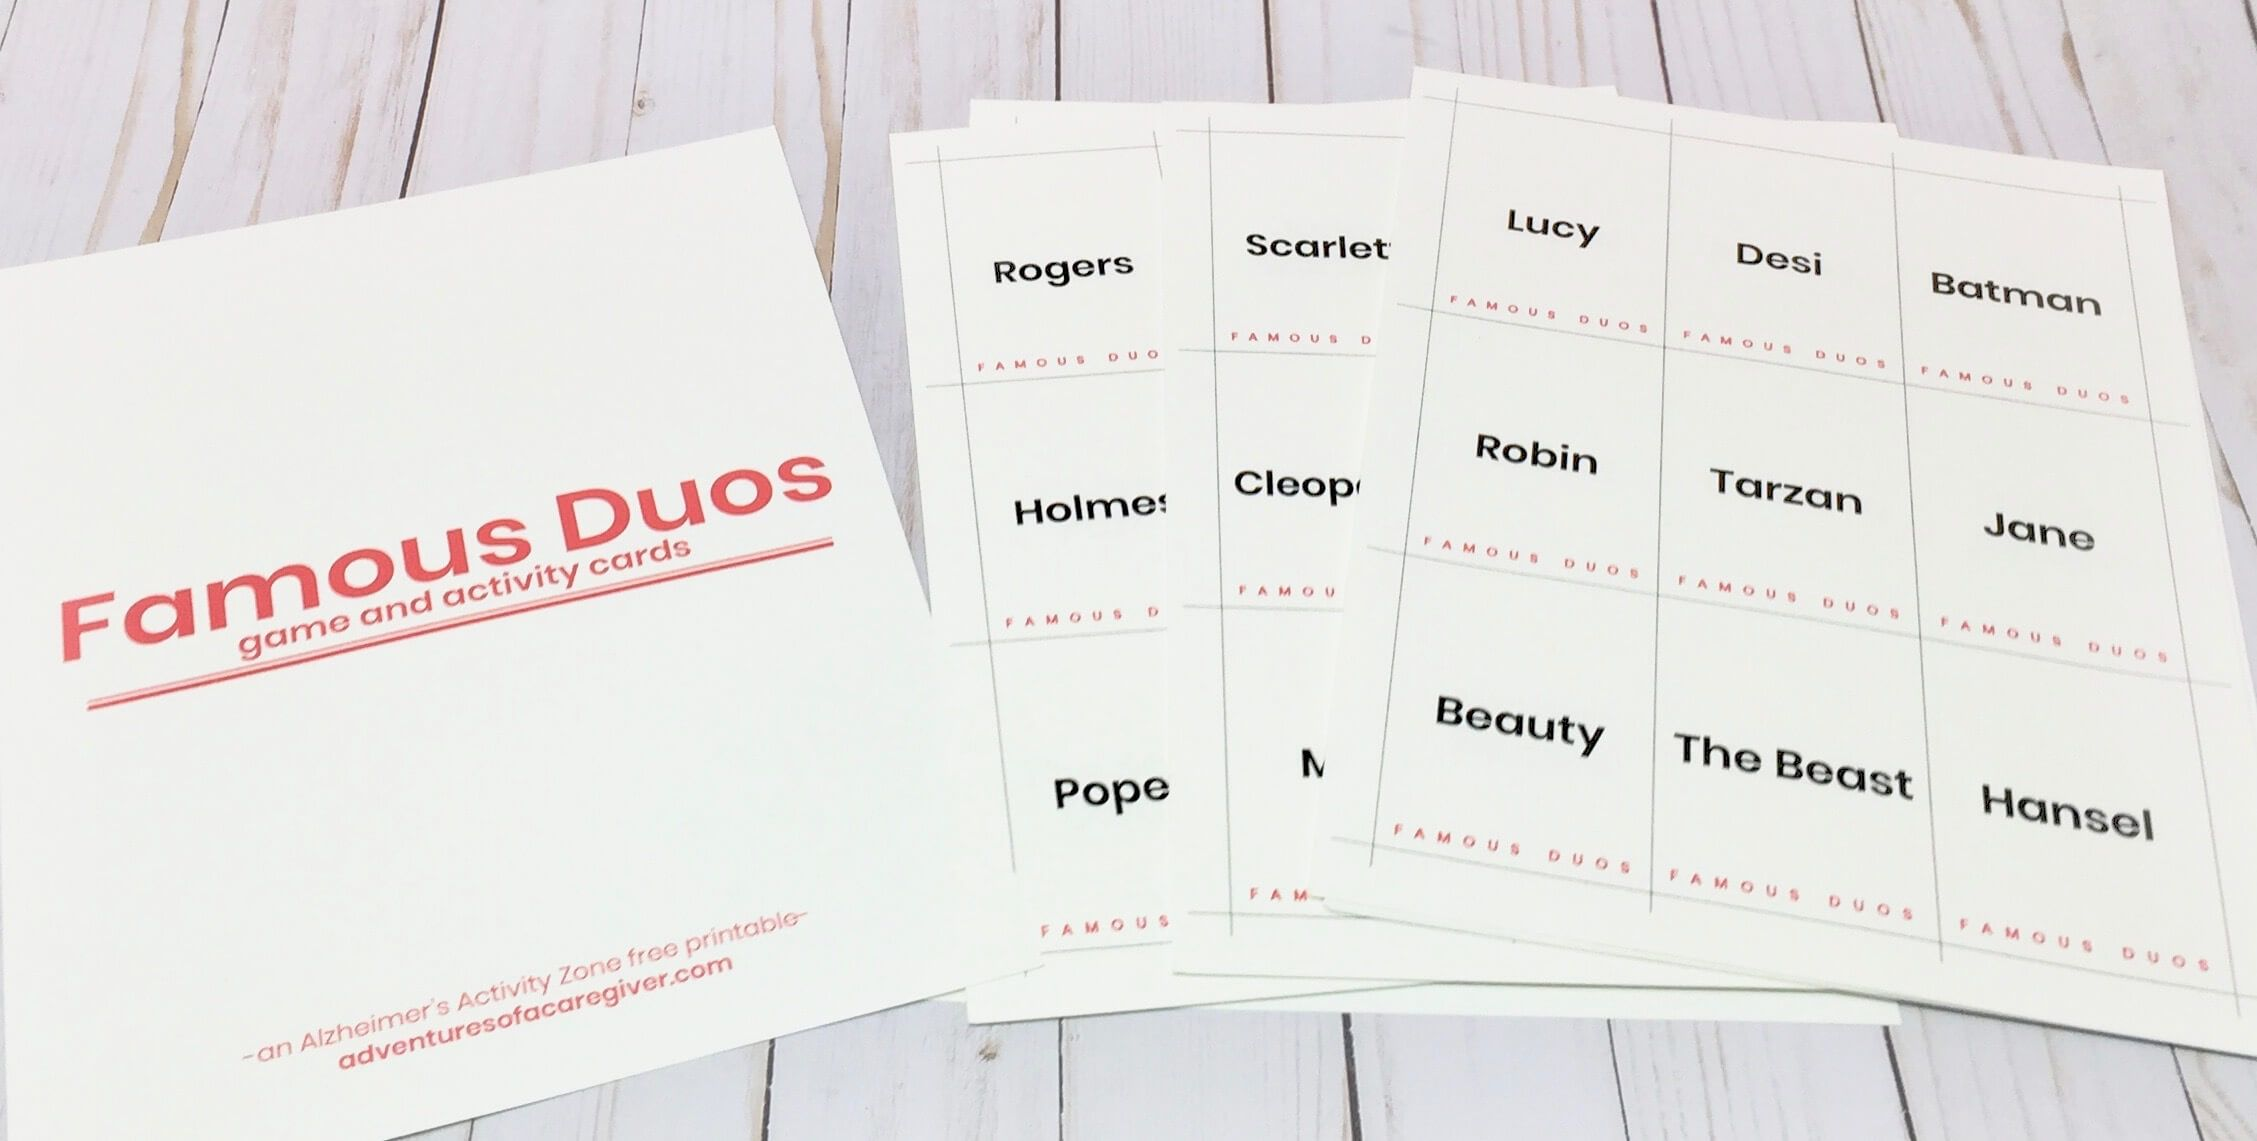 Famous Duos Free Printable